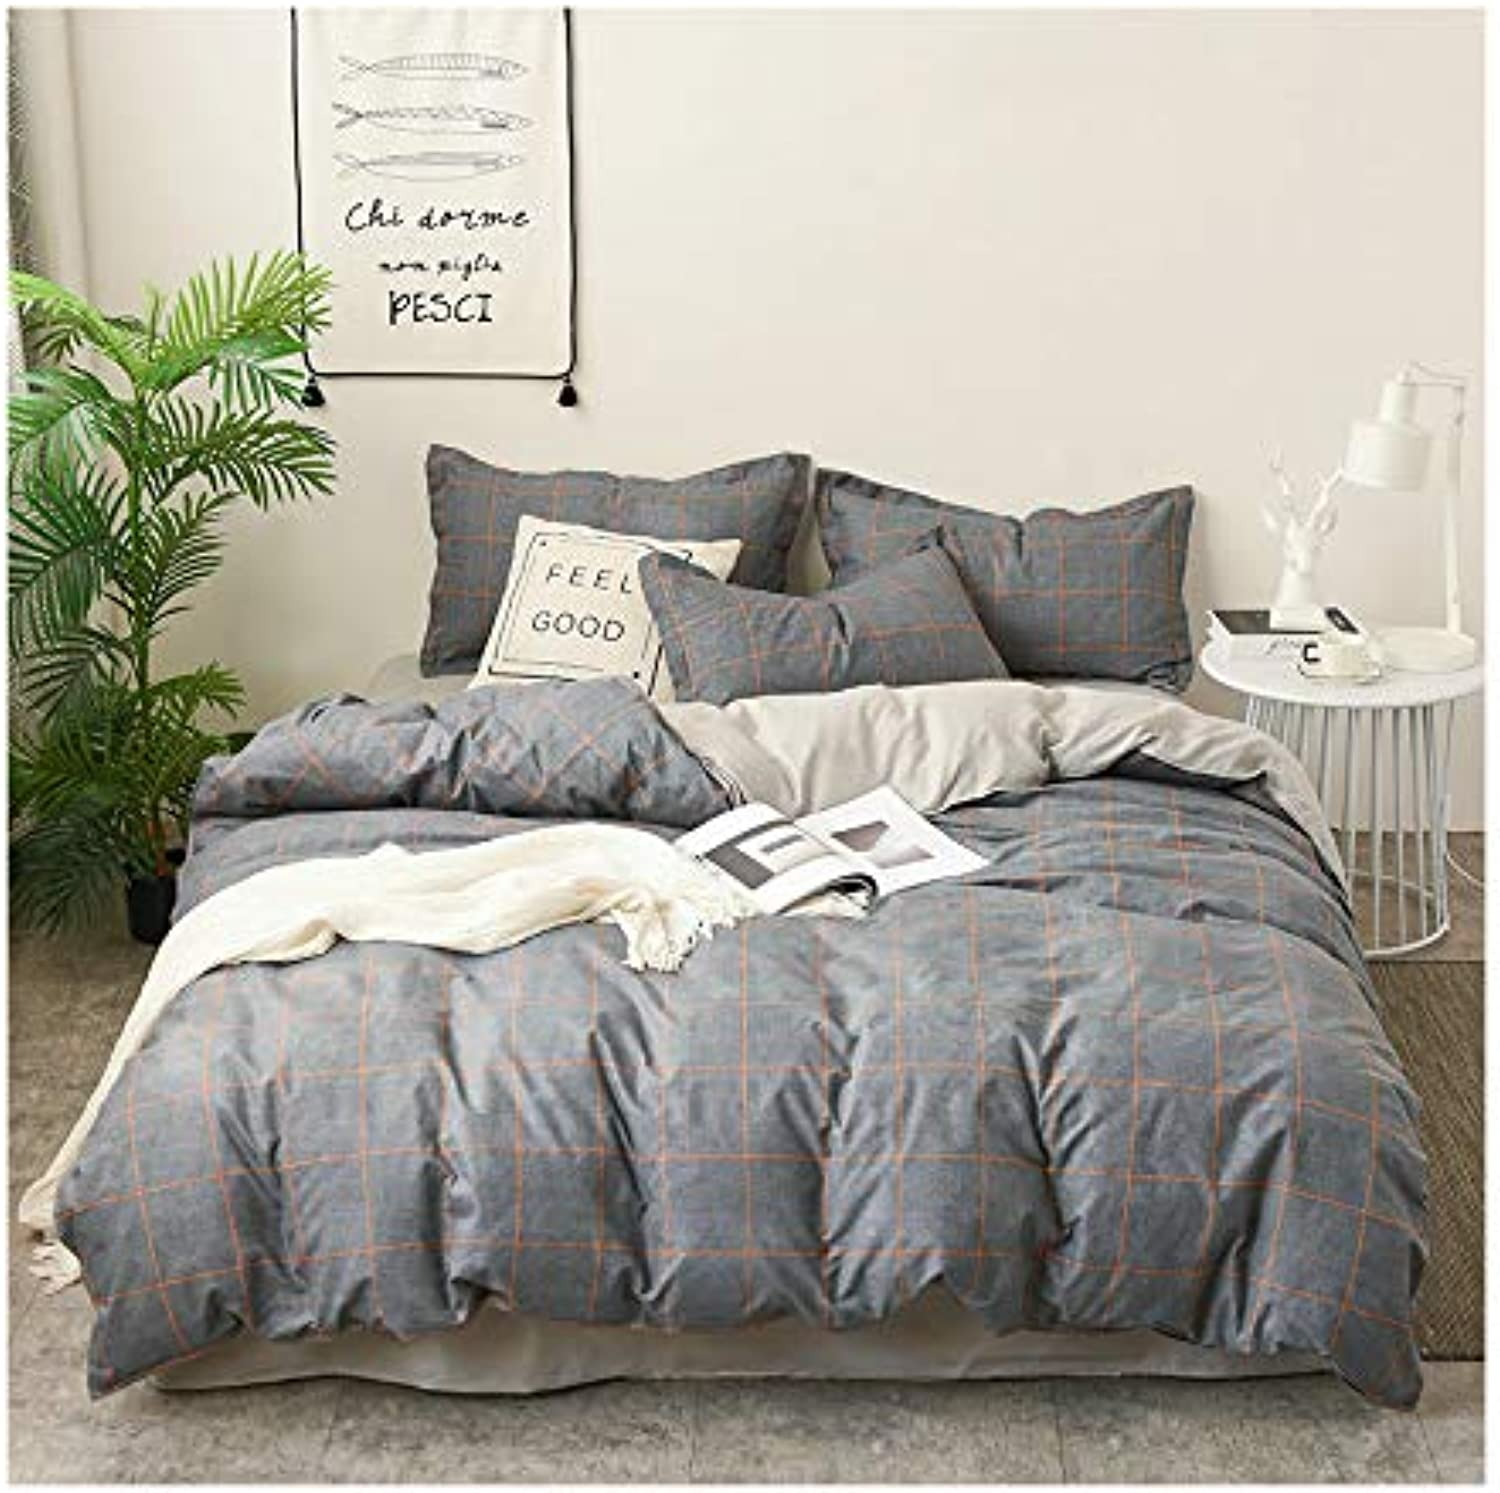 KFZ Hydro Cotton Bed Set Twin Full Queen King Sheets Set Duvet Cover Flat Sheet Pillowcase No Comforter XS1811 Prague Plaid Stripe Plain Design for Kid Adult (Time Stripes, Multi, Full 70 x86 )